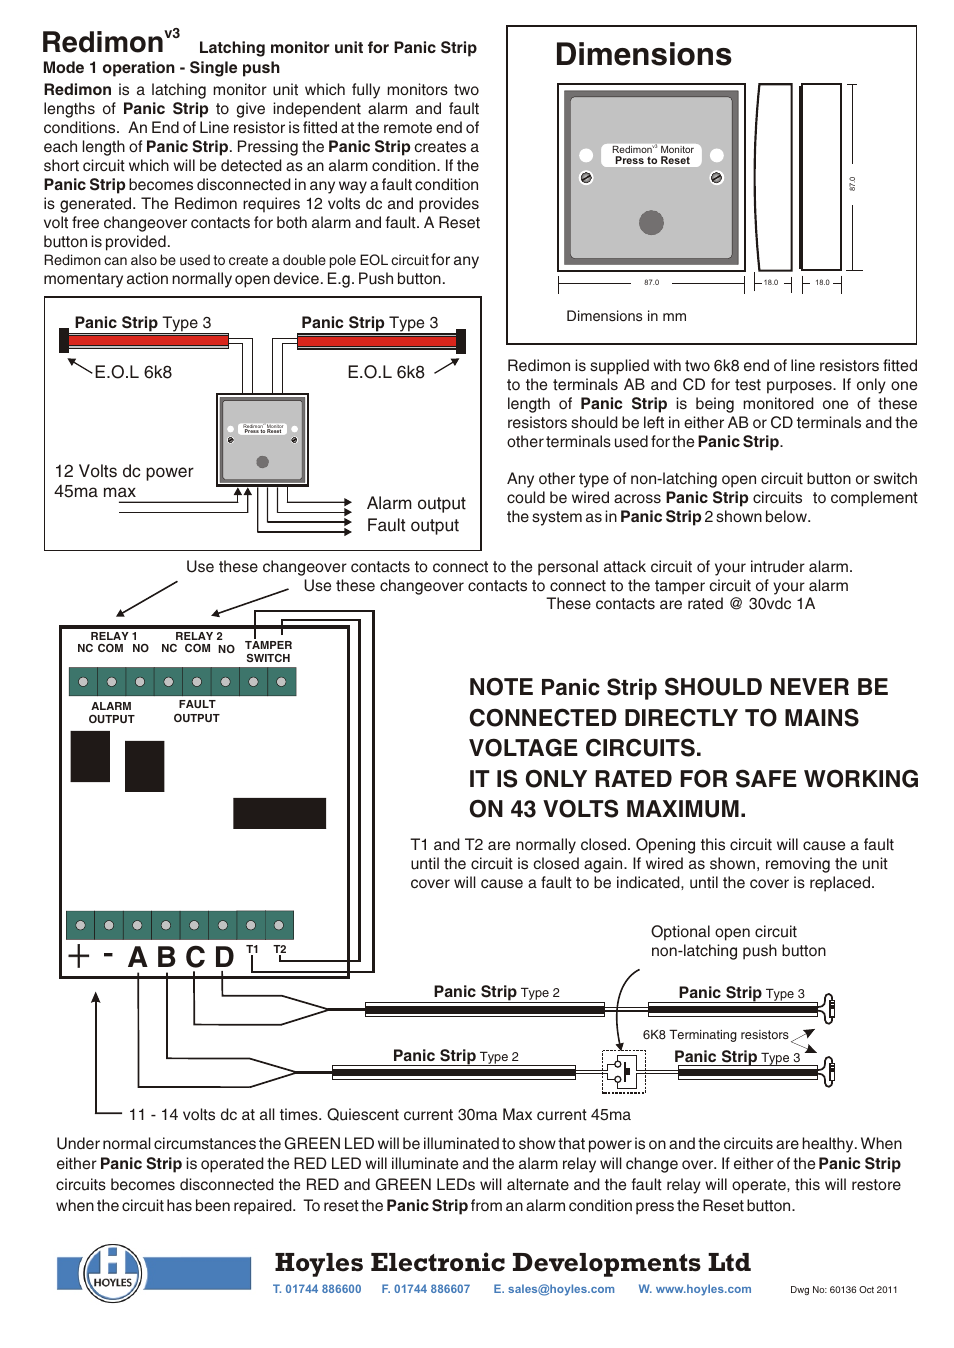 Hoyles Redimon V3 Monitor User Manual 2 Pages End Of Line Resistors Eolr For Normally Open And Closed Circuits